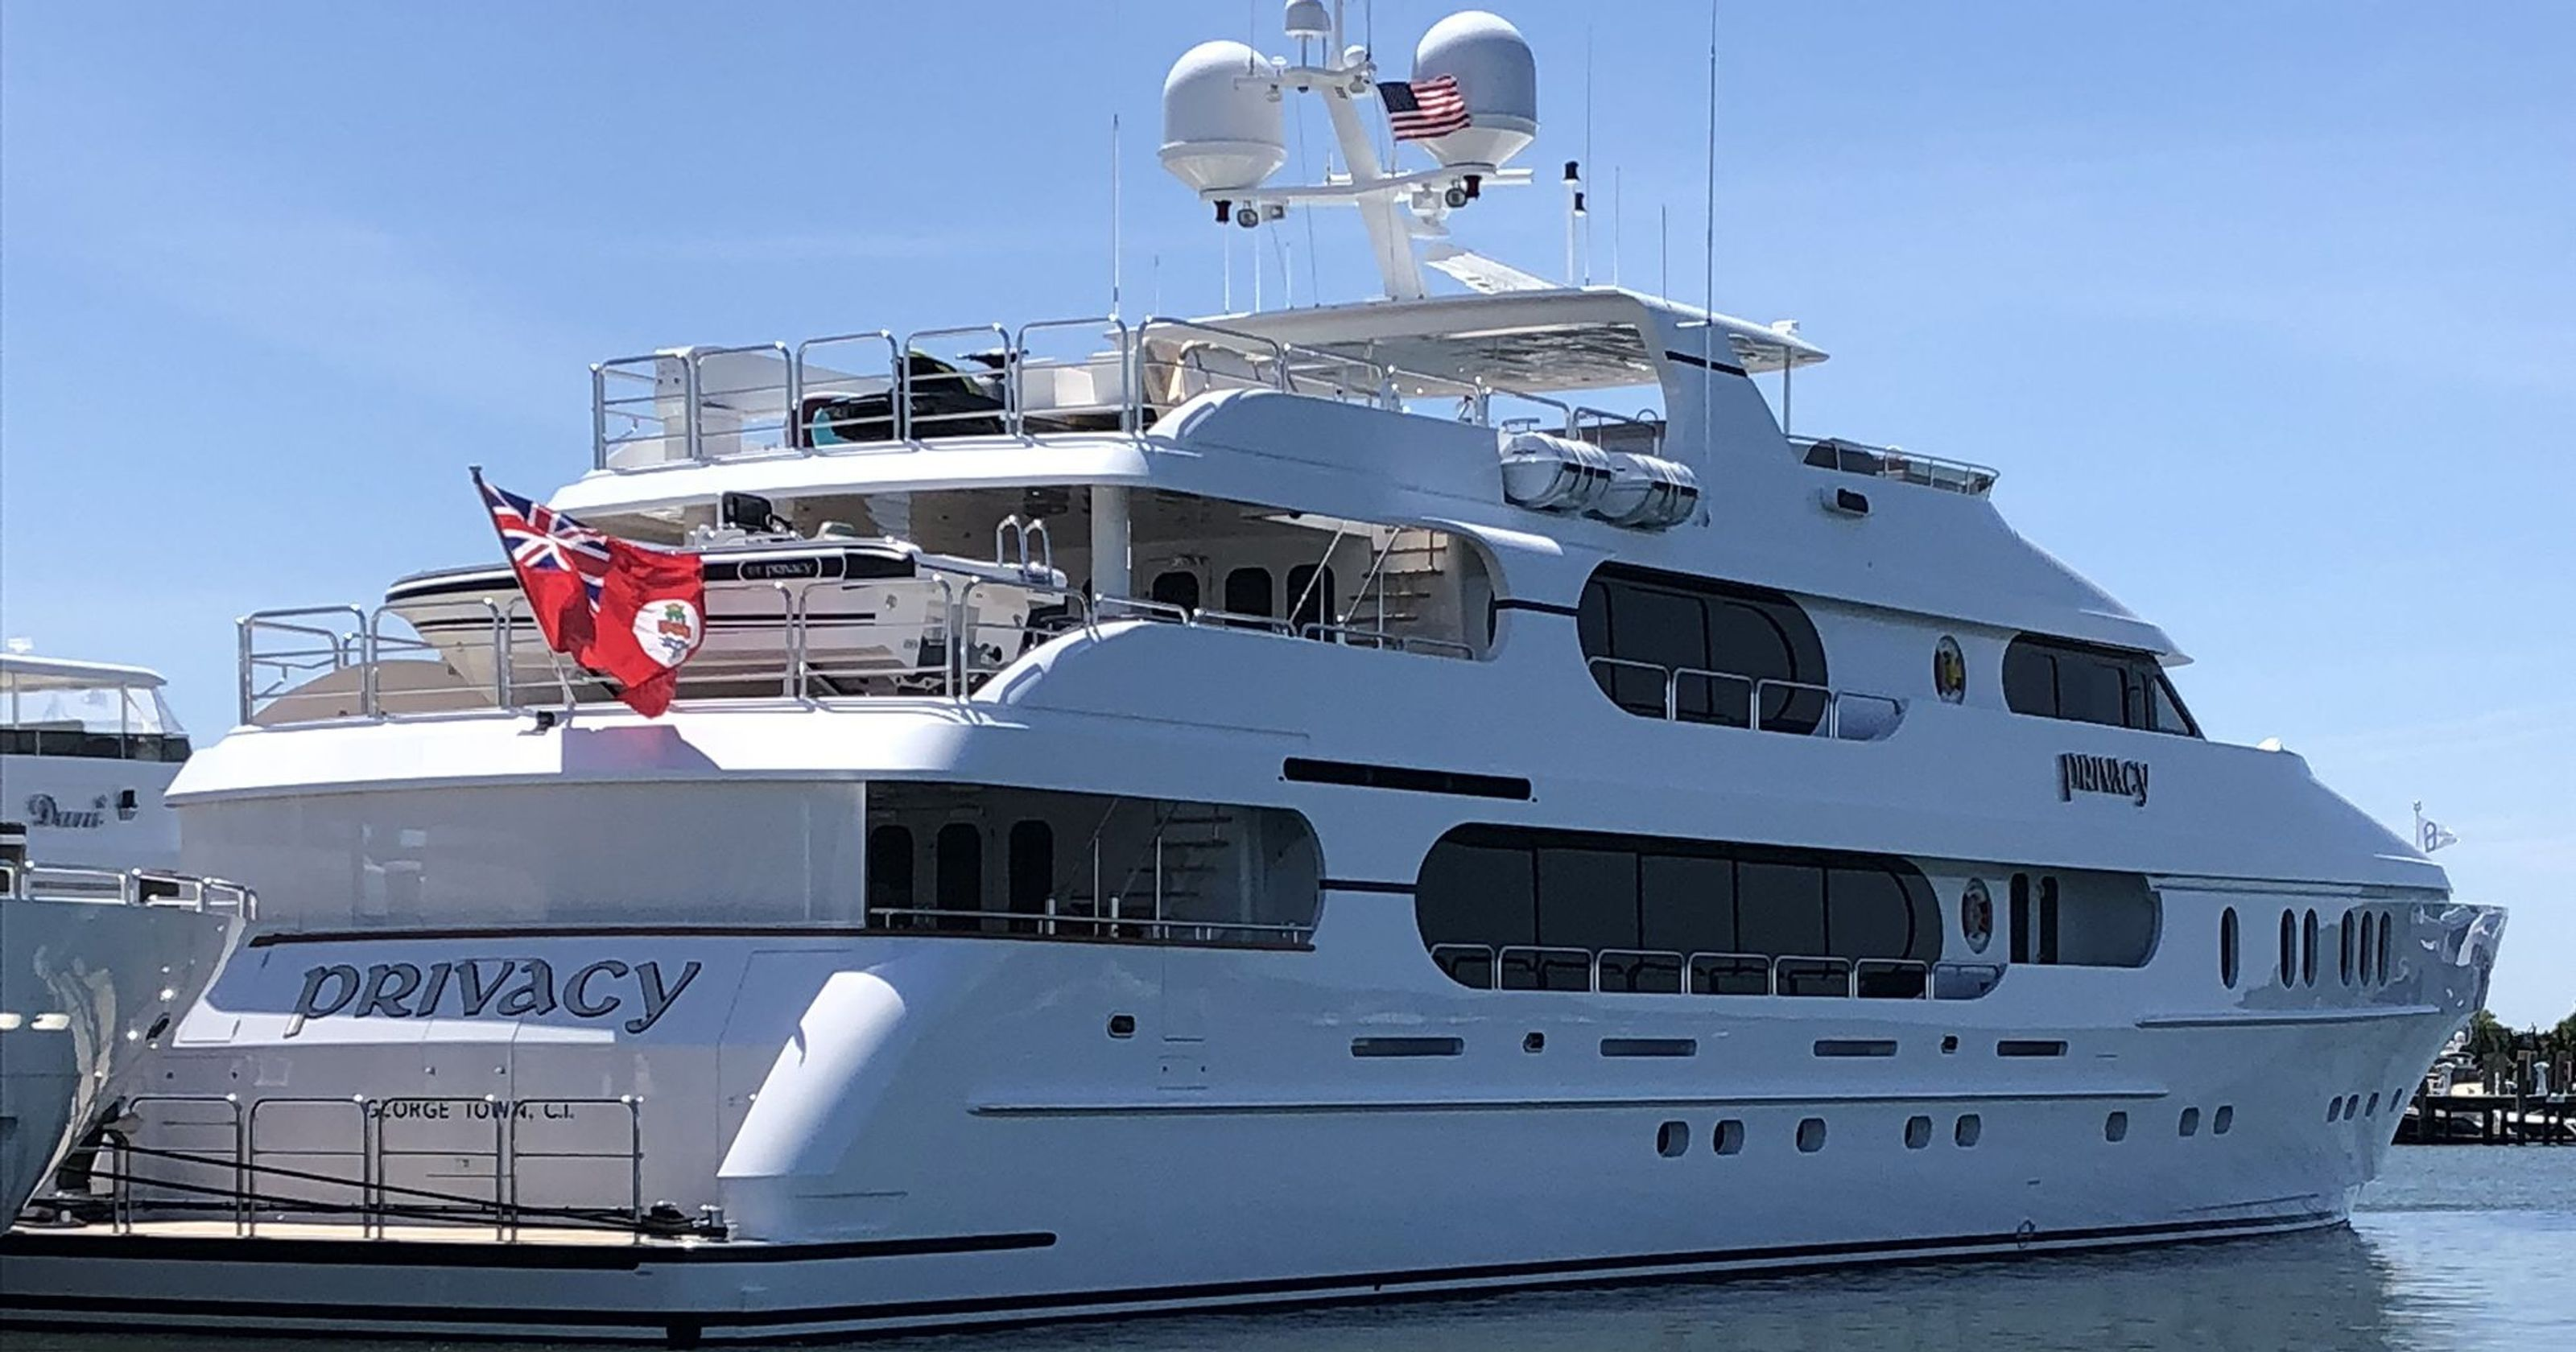 what is the worth of tiger woods yacht and his net worth